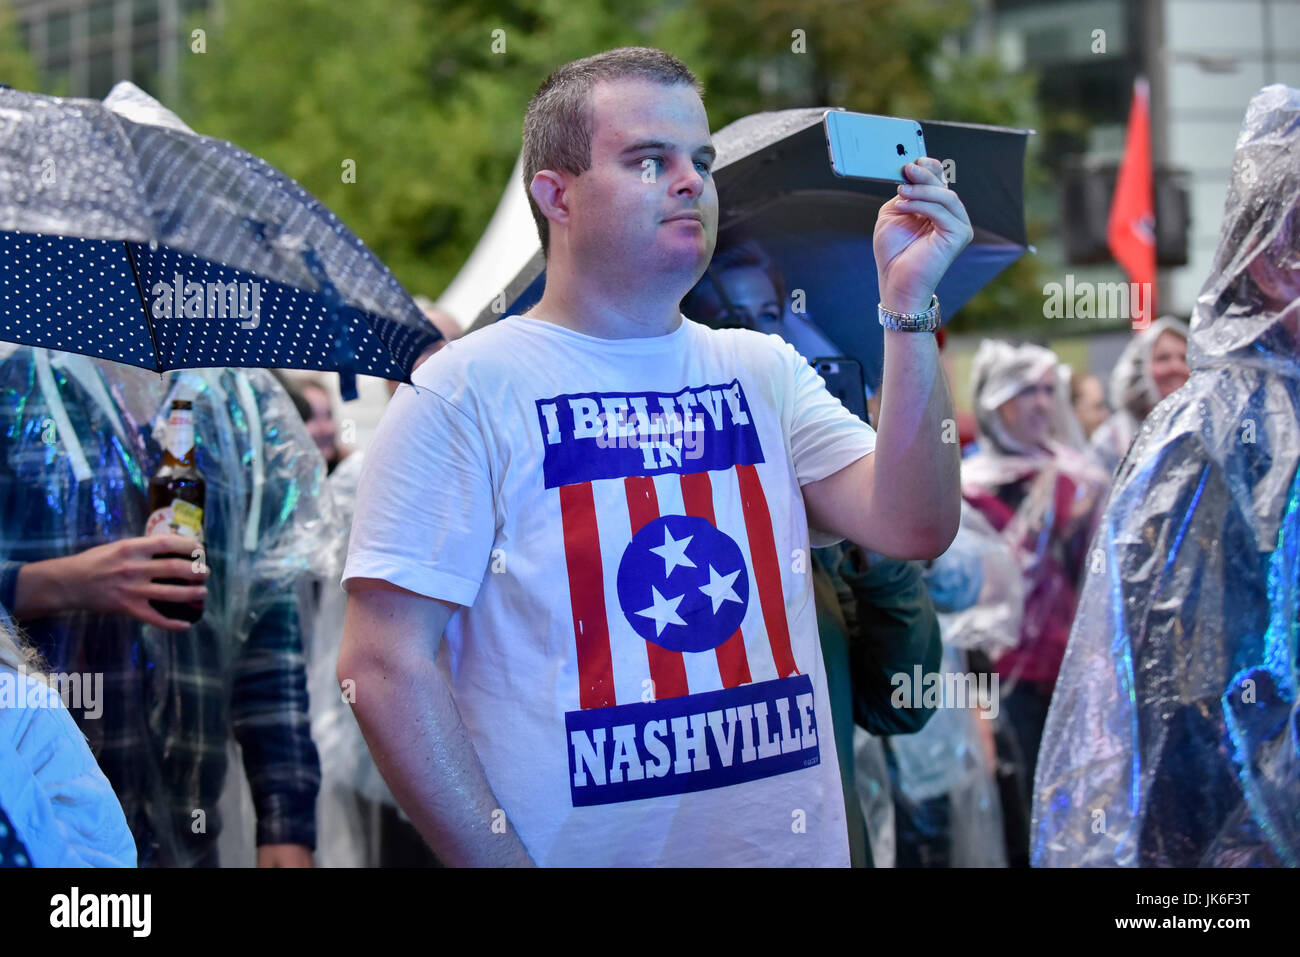 London, UK.  22 July 2017. A fan enjoys the performance on stage.  'Nashville Meets London', a country music - Stock Image